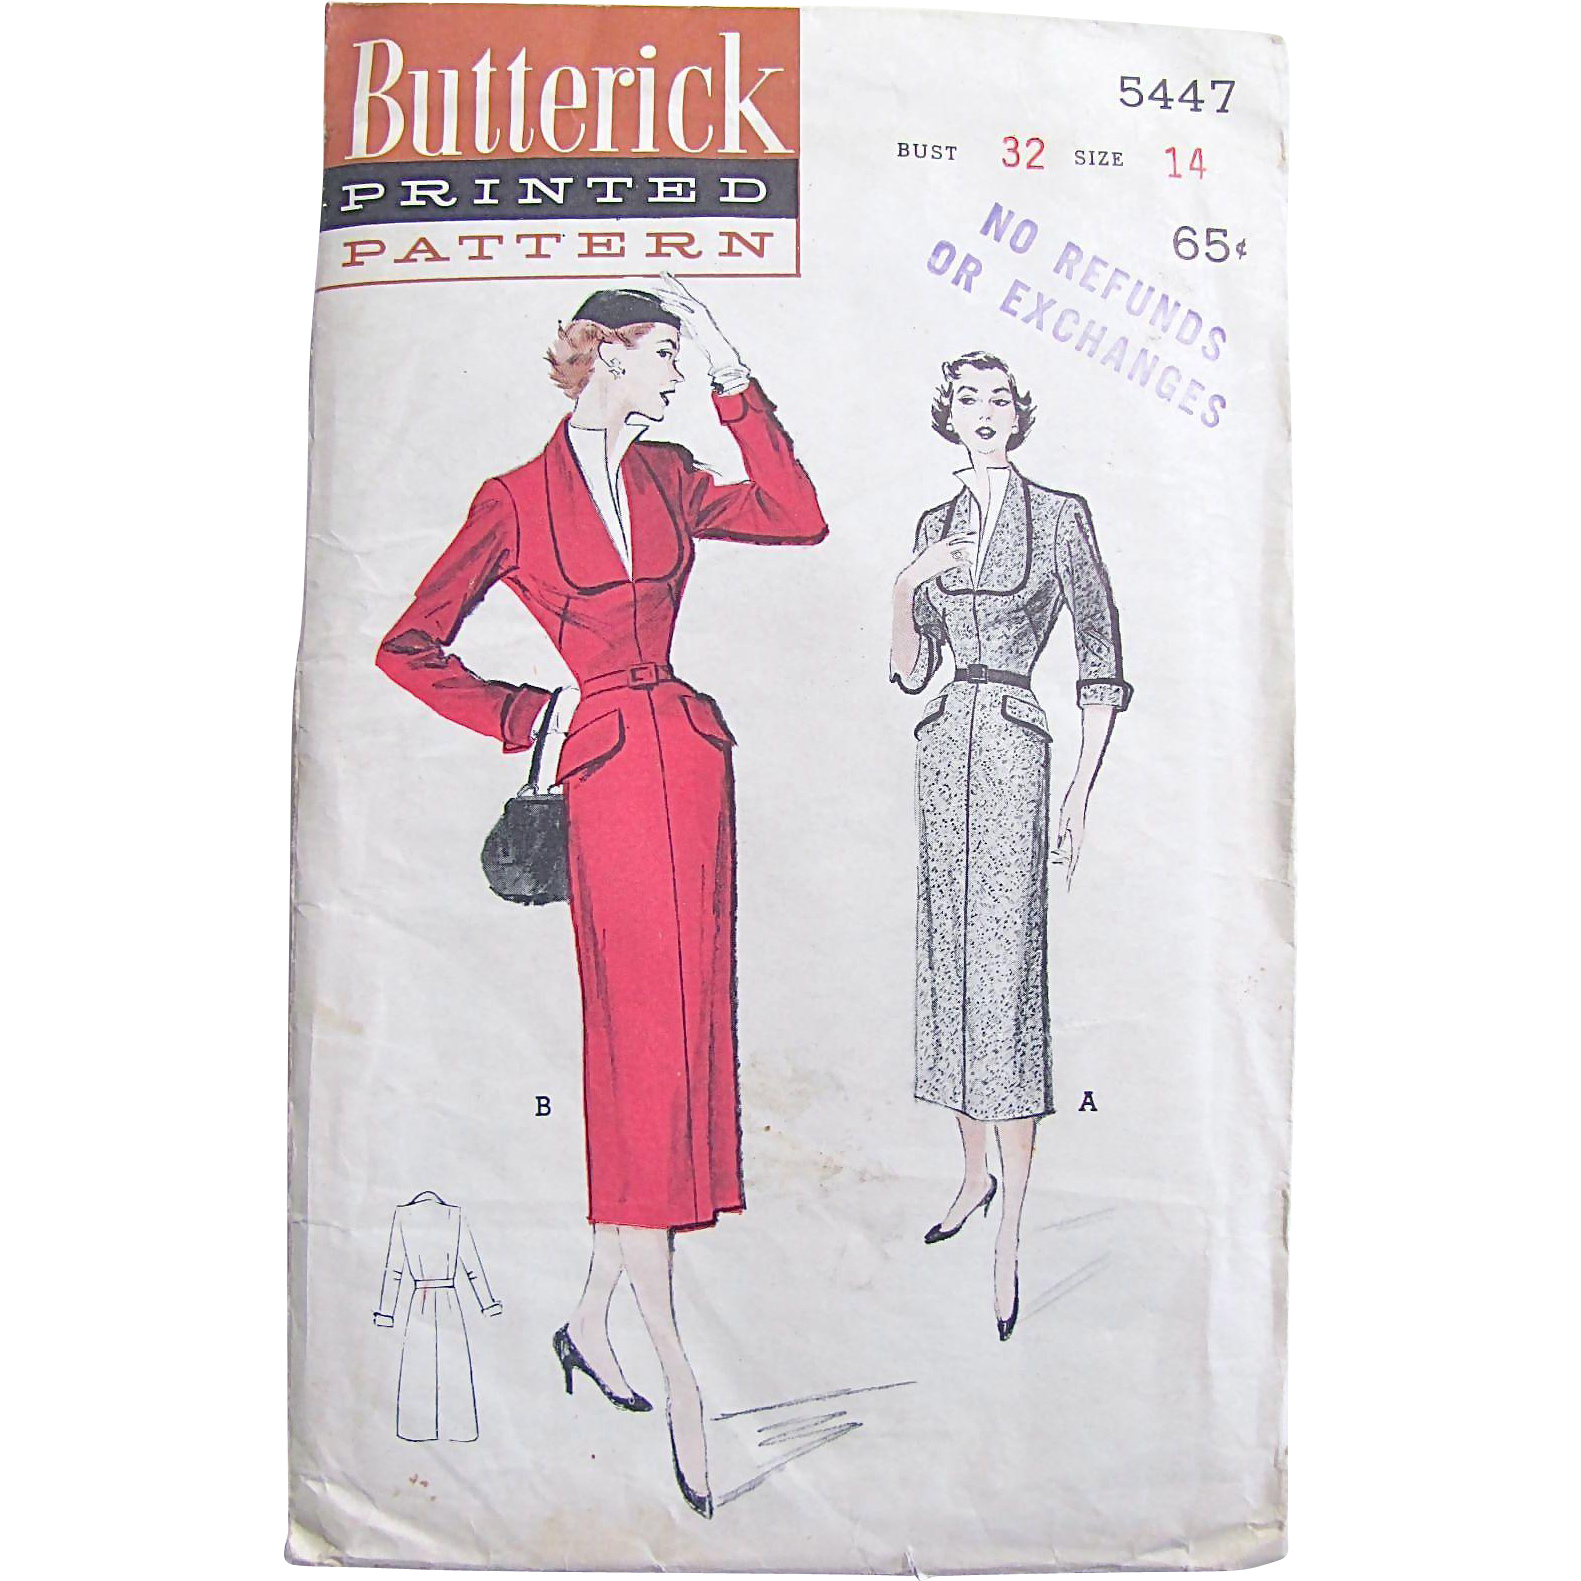 Butterick 5447, Tailored Dress with Horseshoe Neckline, Size 14, Bust 32, Vintage 1950s Fashion, Uncut and Factory Folded